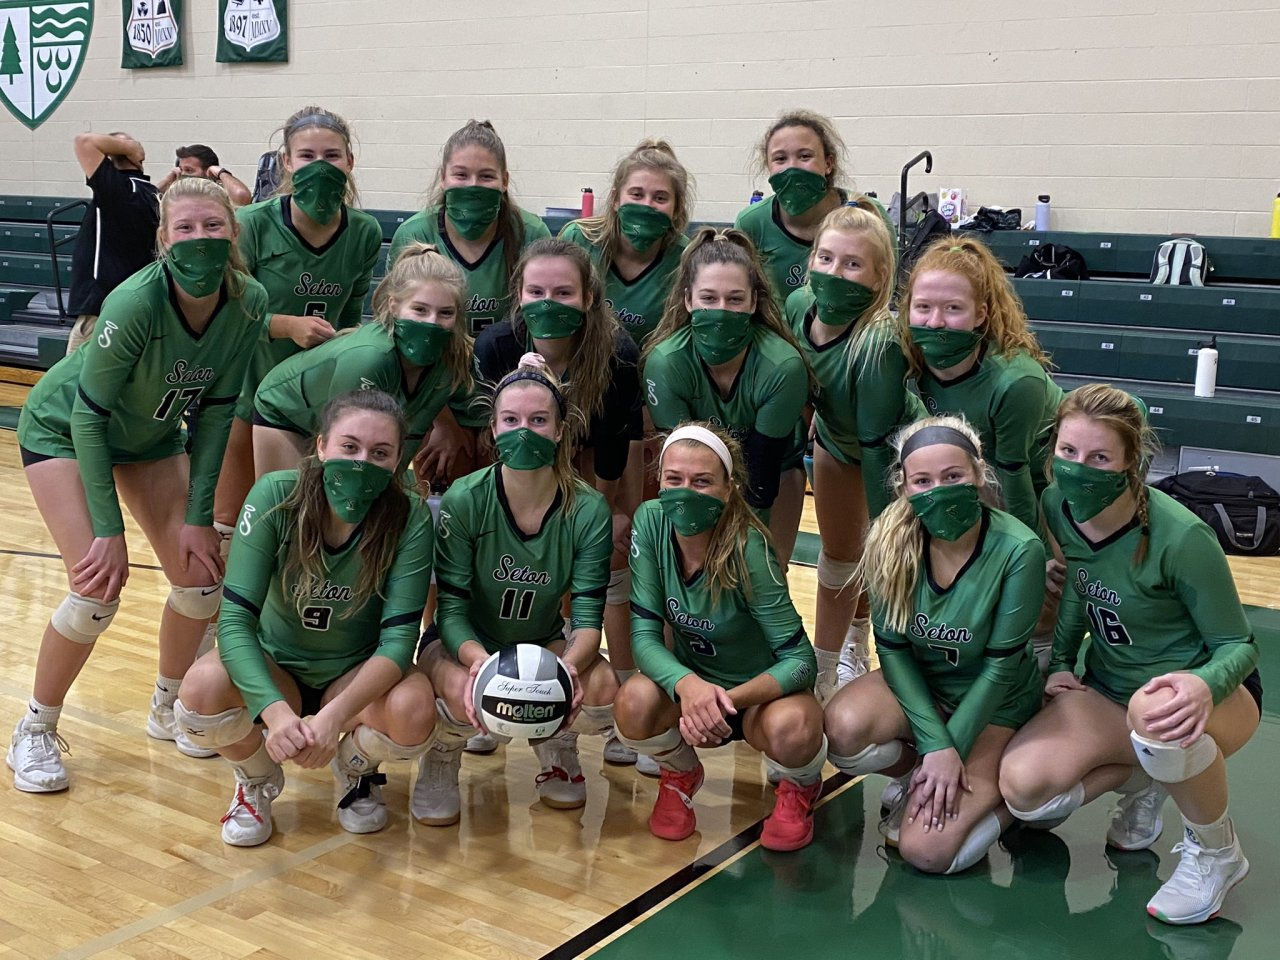 The Seton volleyball team has formed a sisterhood during this successful season